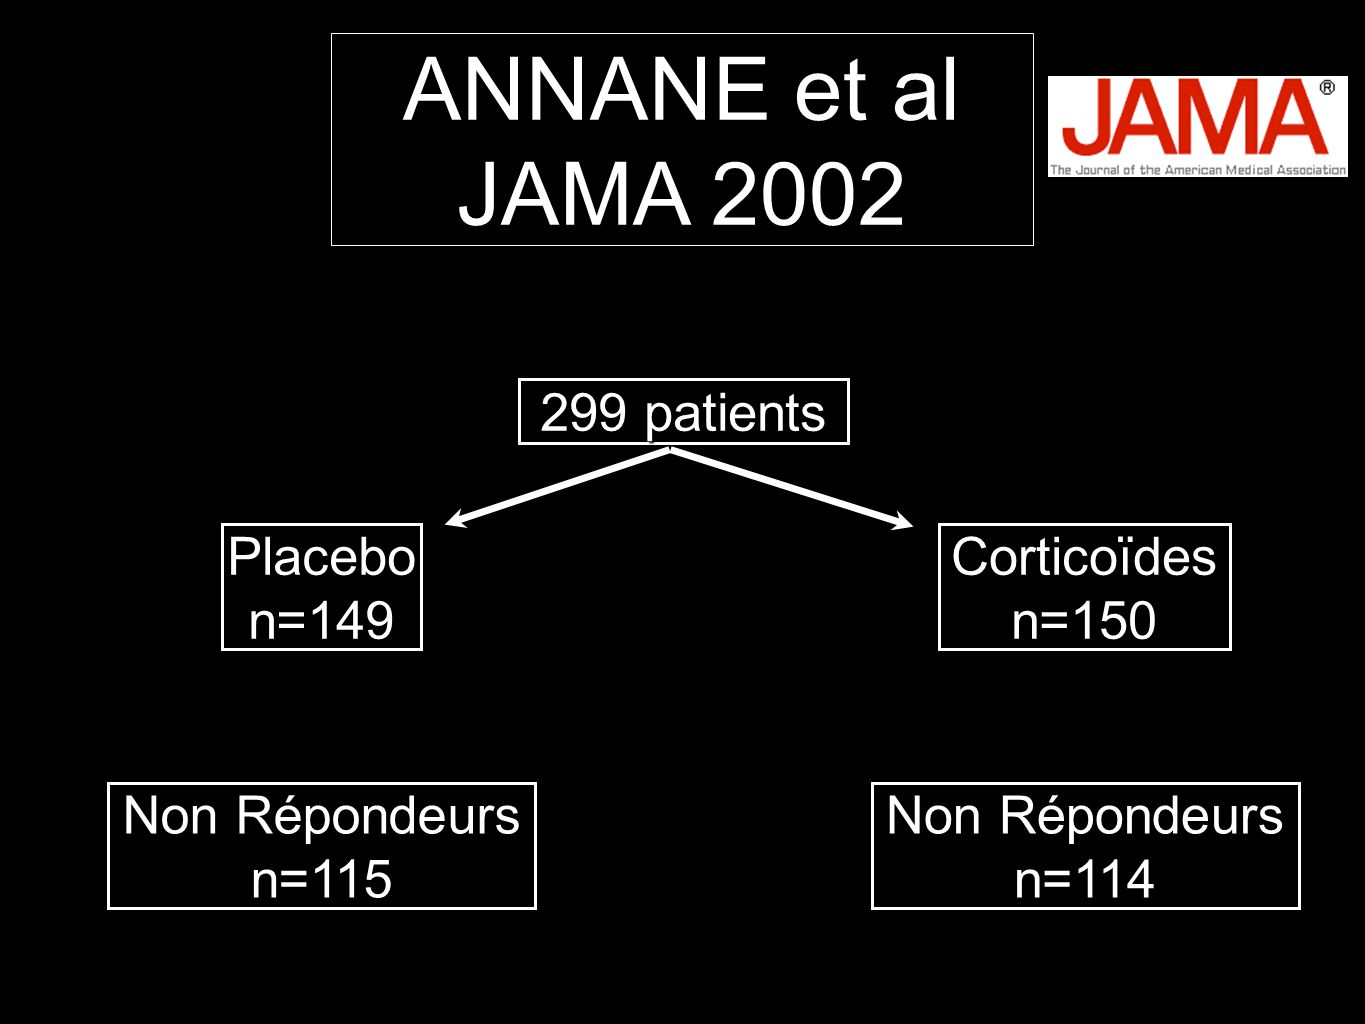 ANNANE et al JAMA 2002 299 patients Placebo n=149 Corticoïdes n=150